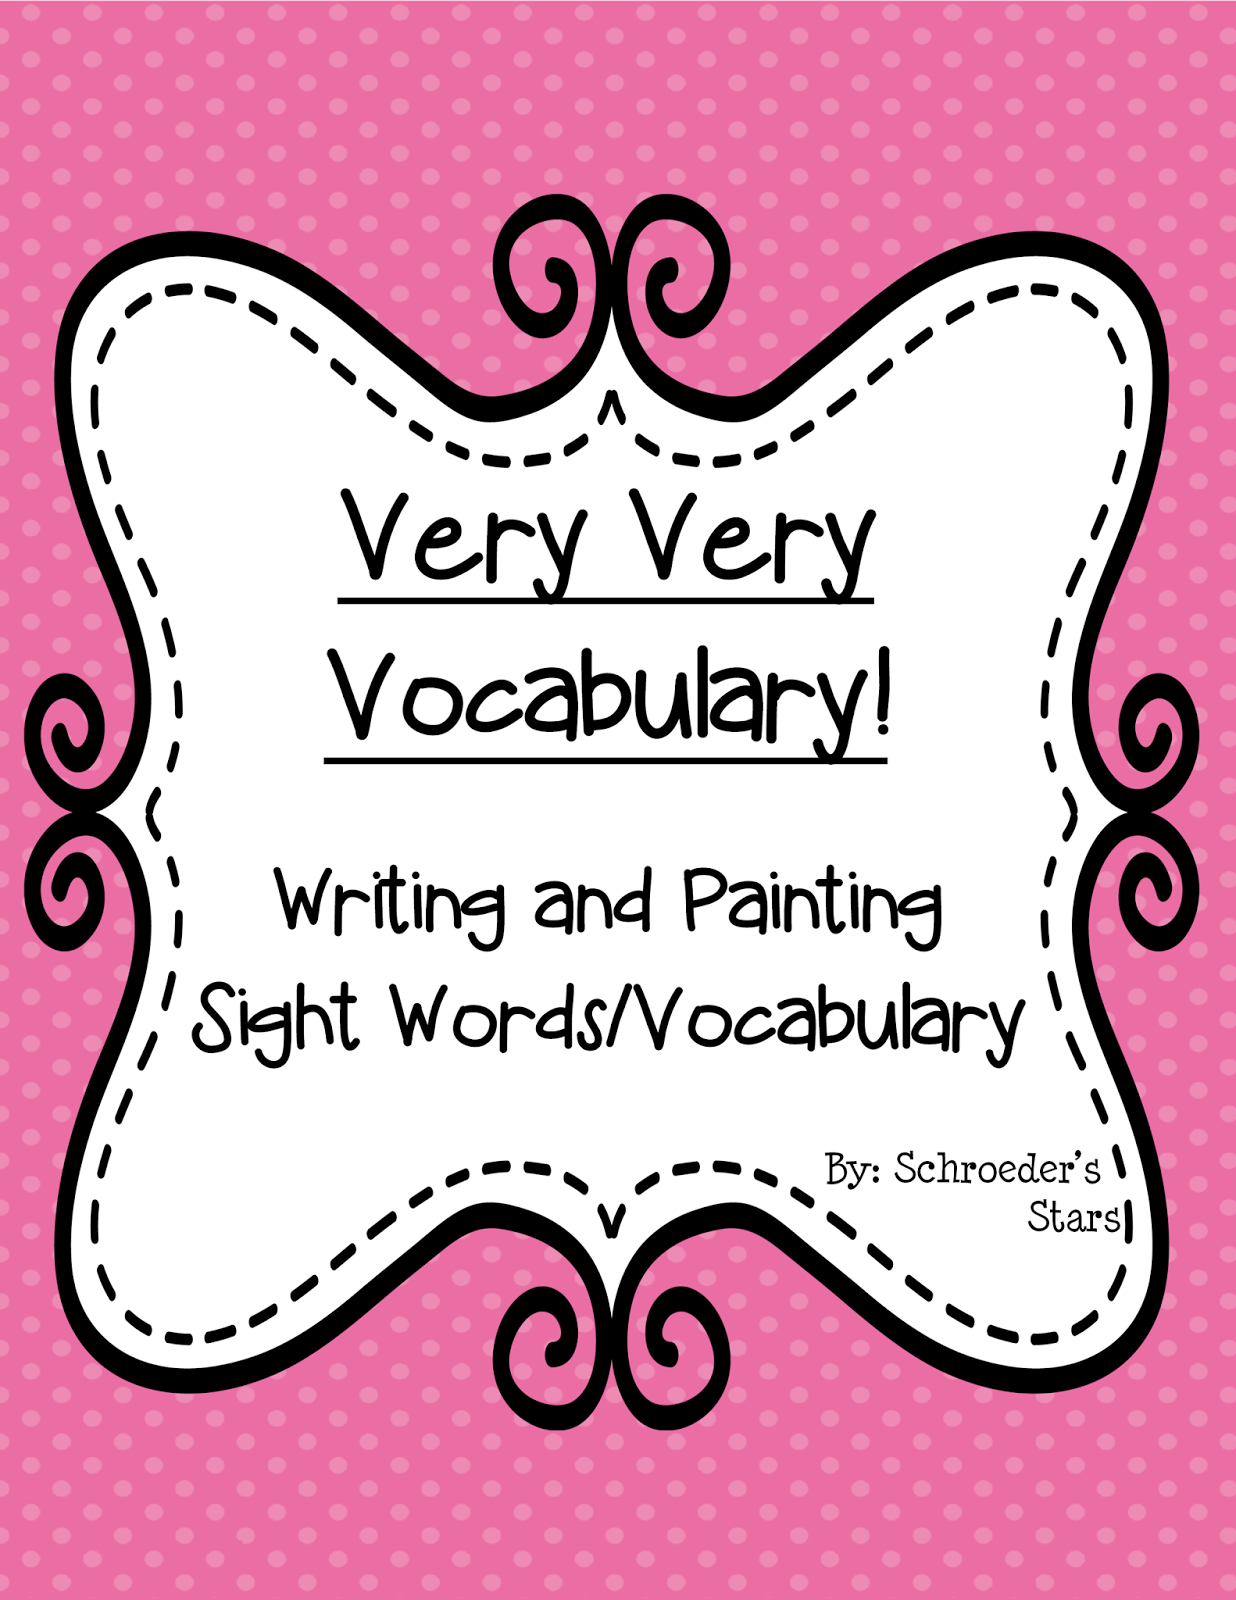 http://www.teacherspayteachers.com/Product/Very-Very-Vocabulary-1115415